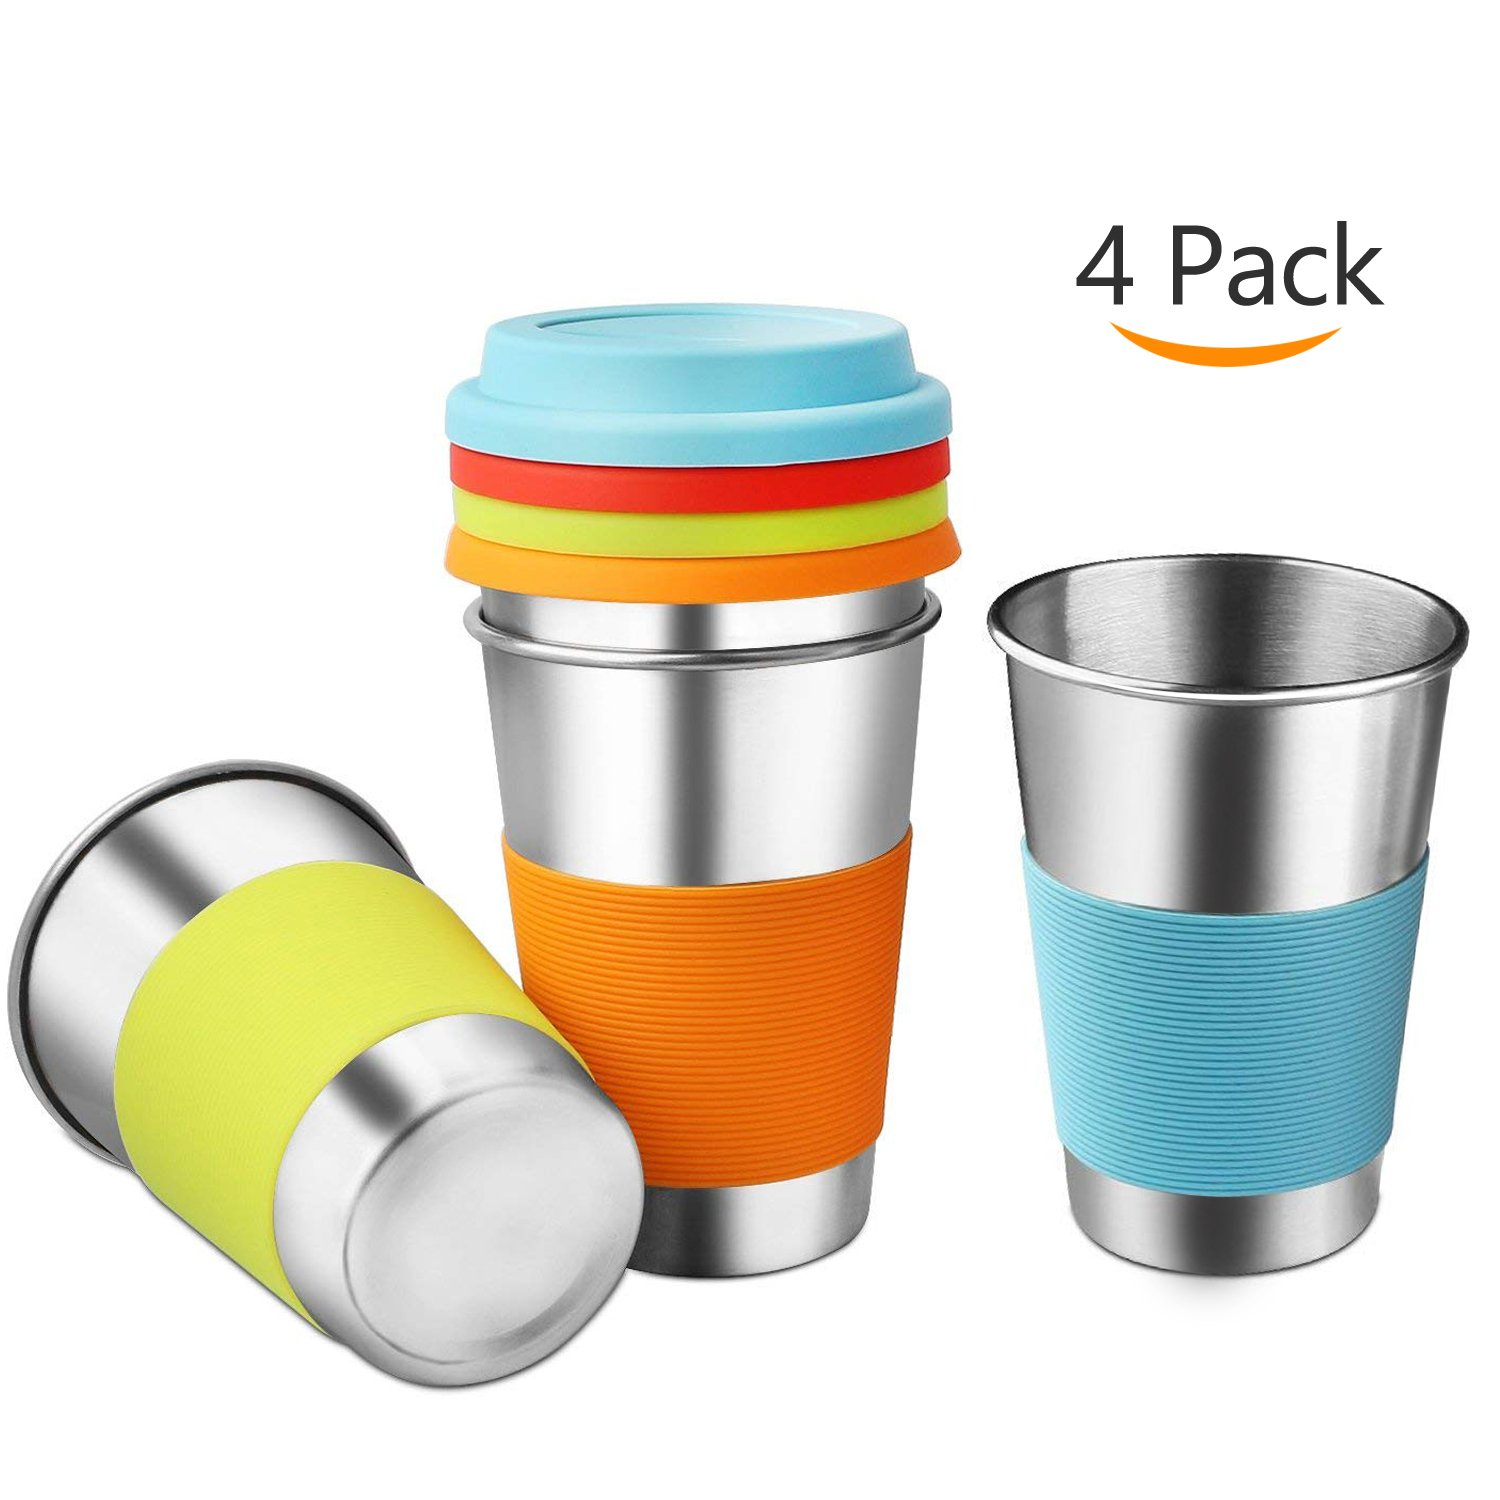 Healthy Stainless Steel Cups with Silicone Sleeves & Lids,Srinea 4 pack 16 oz.18/8 Stackable Drinking Tumblers BPA-Free for Adults,Kids and Toddlers